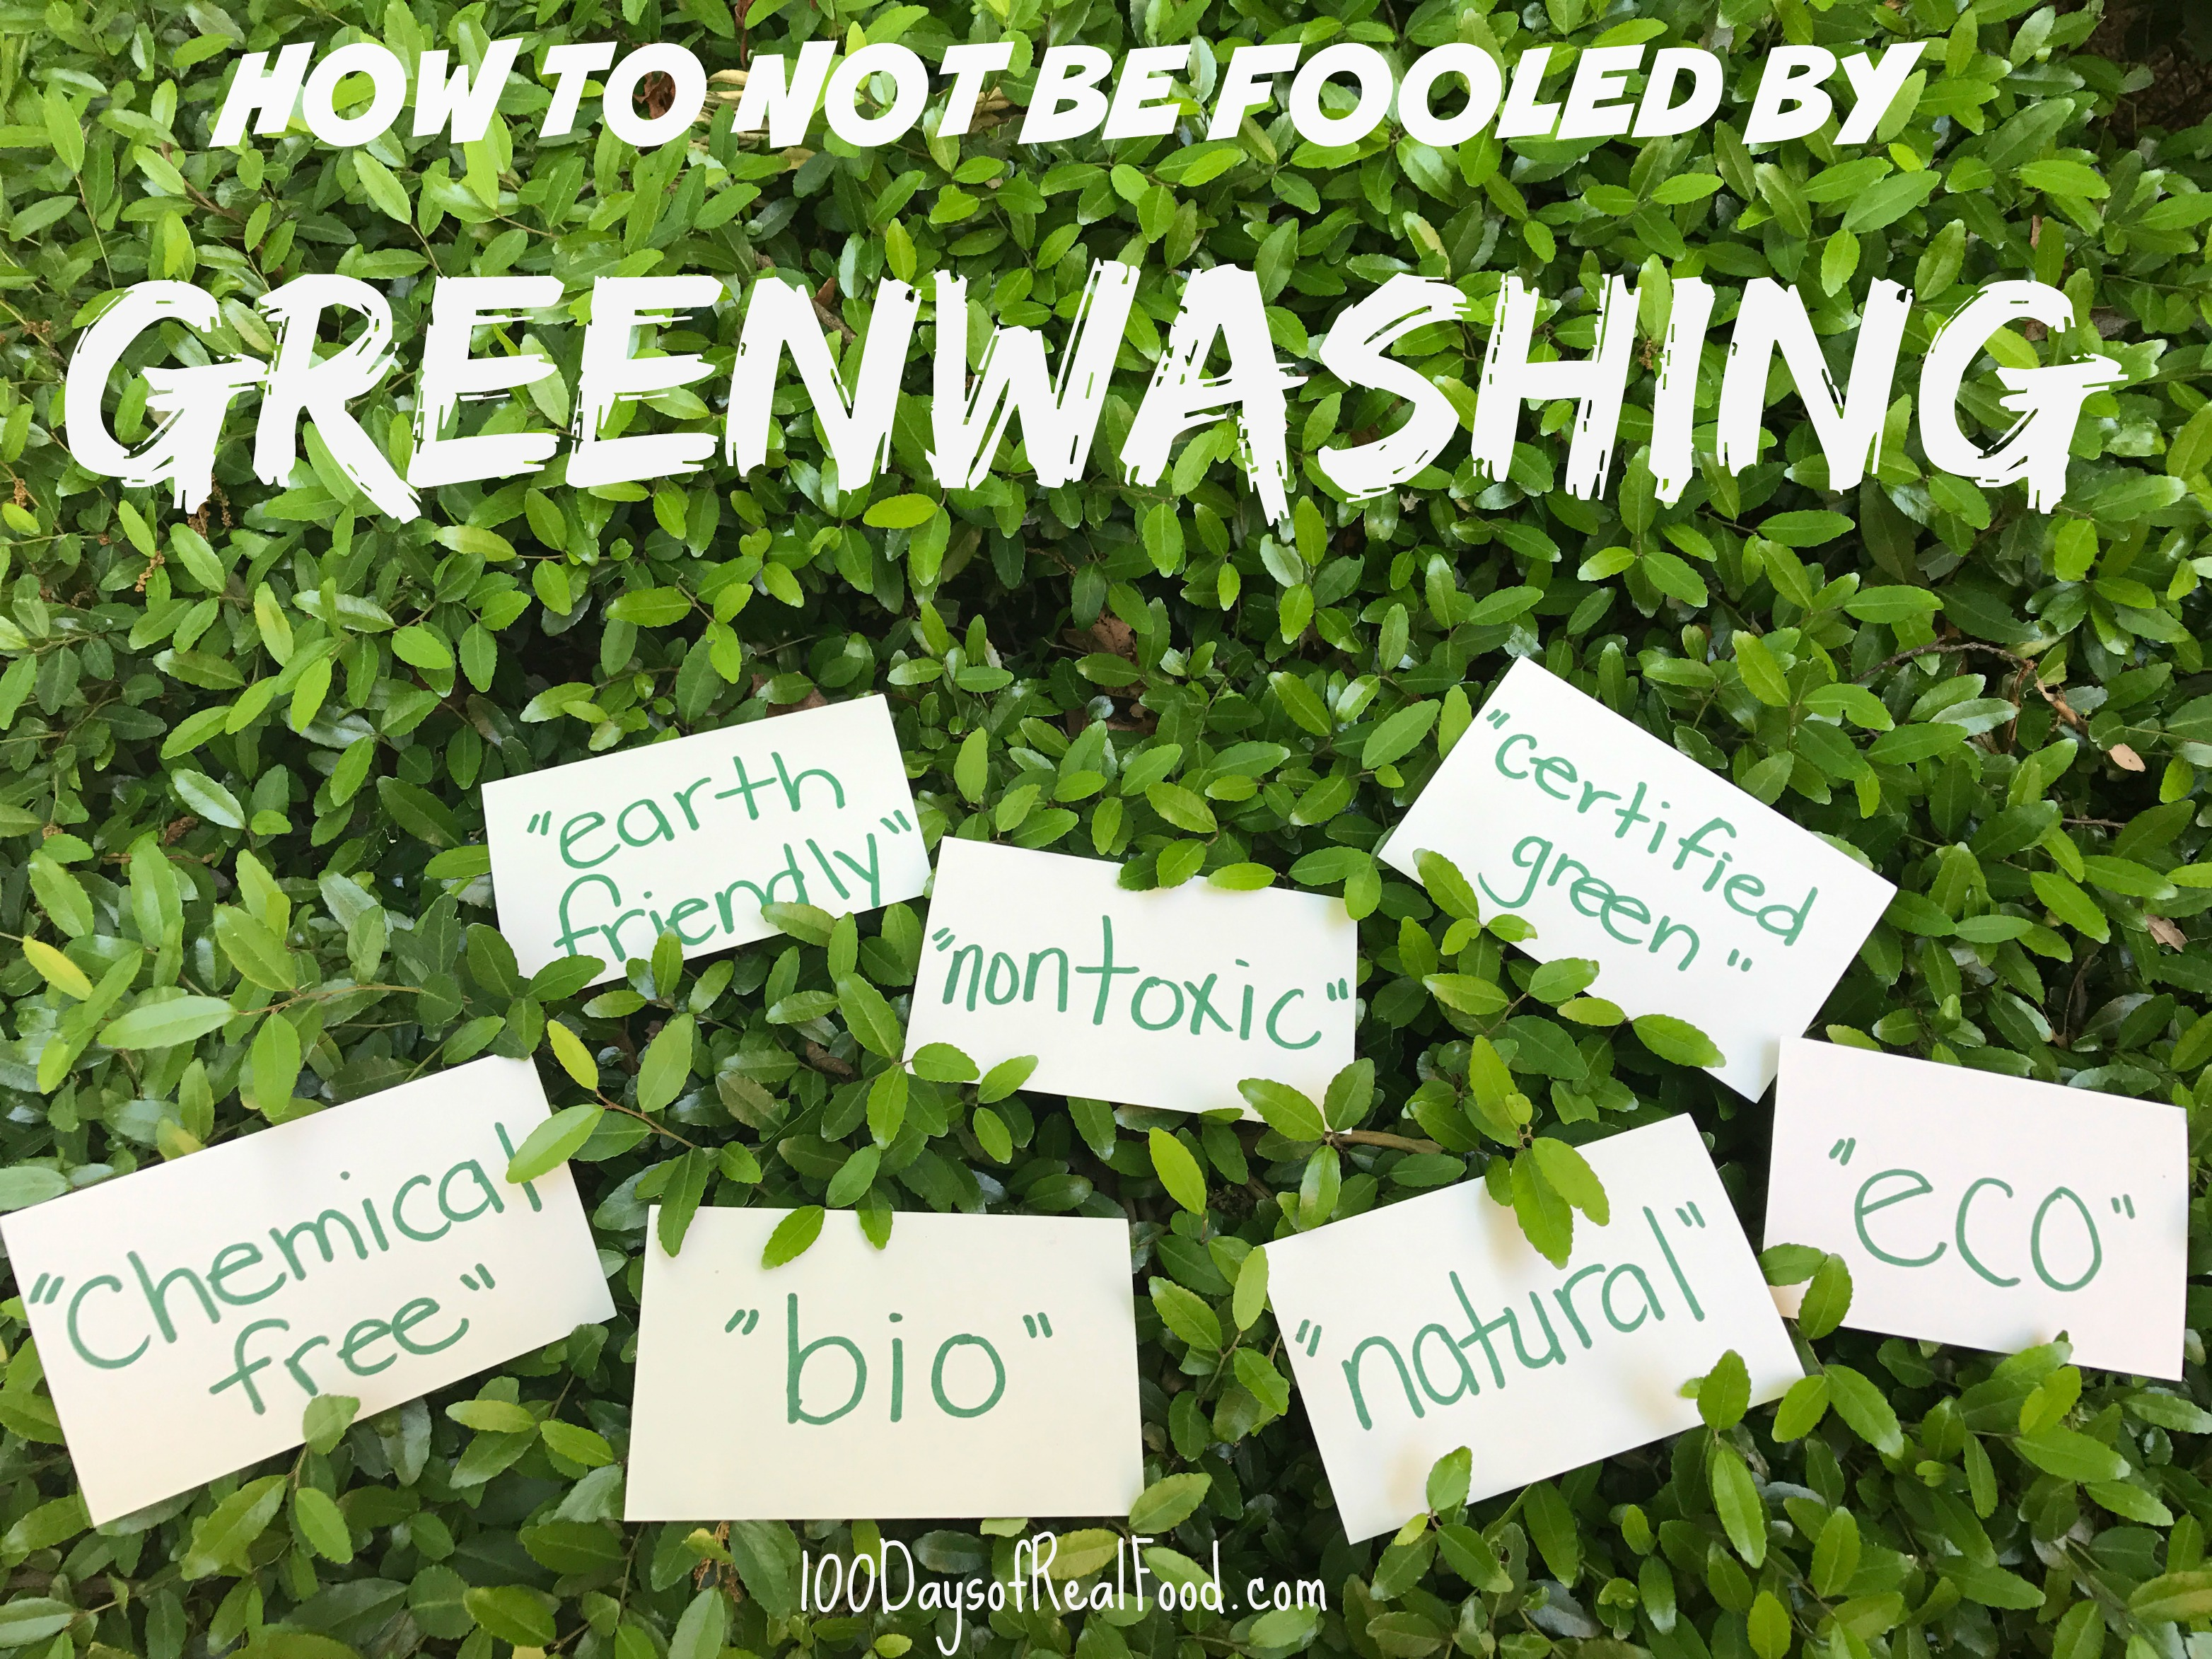 What Is 'Greenwashing'?